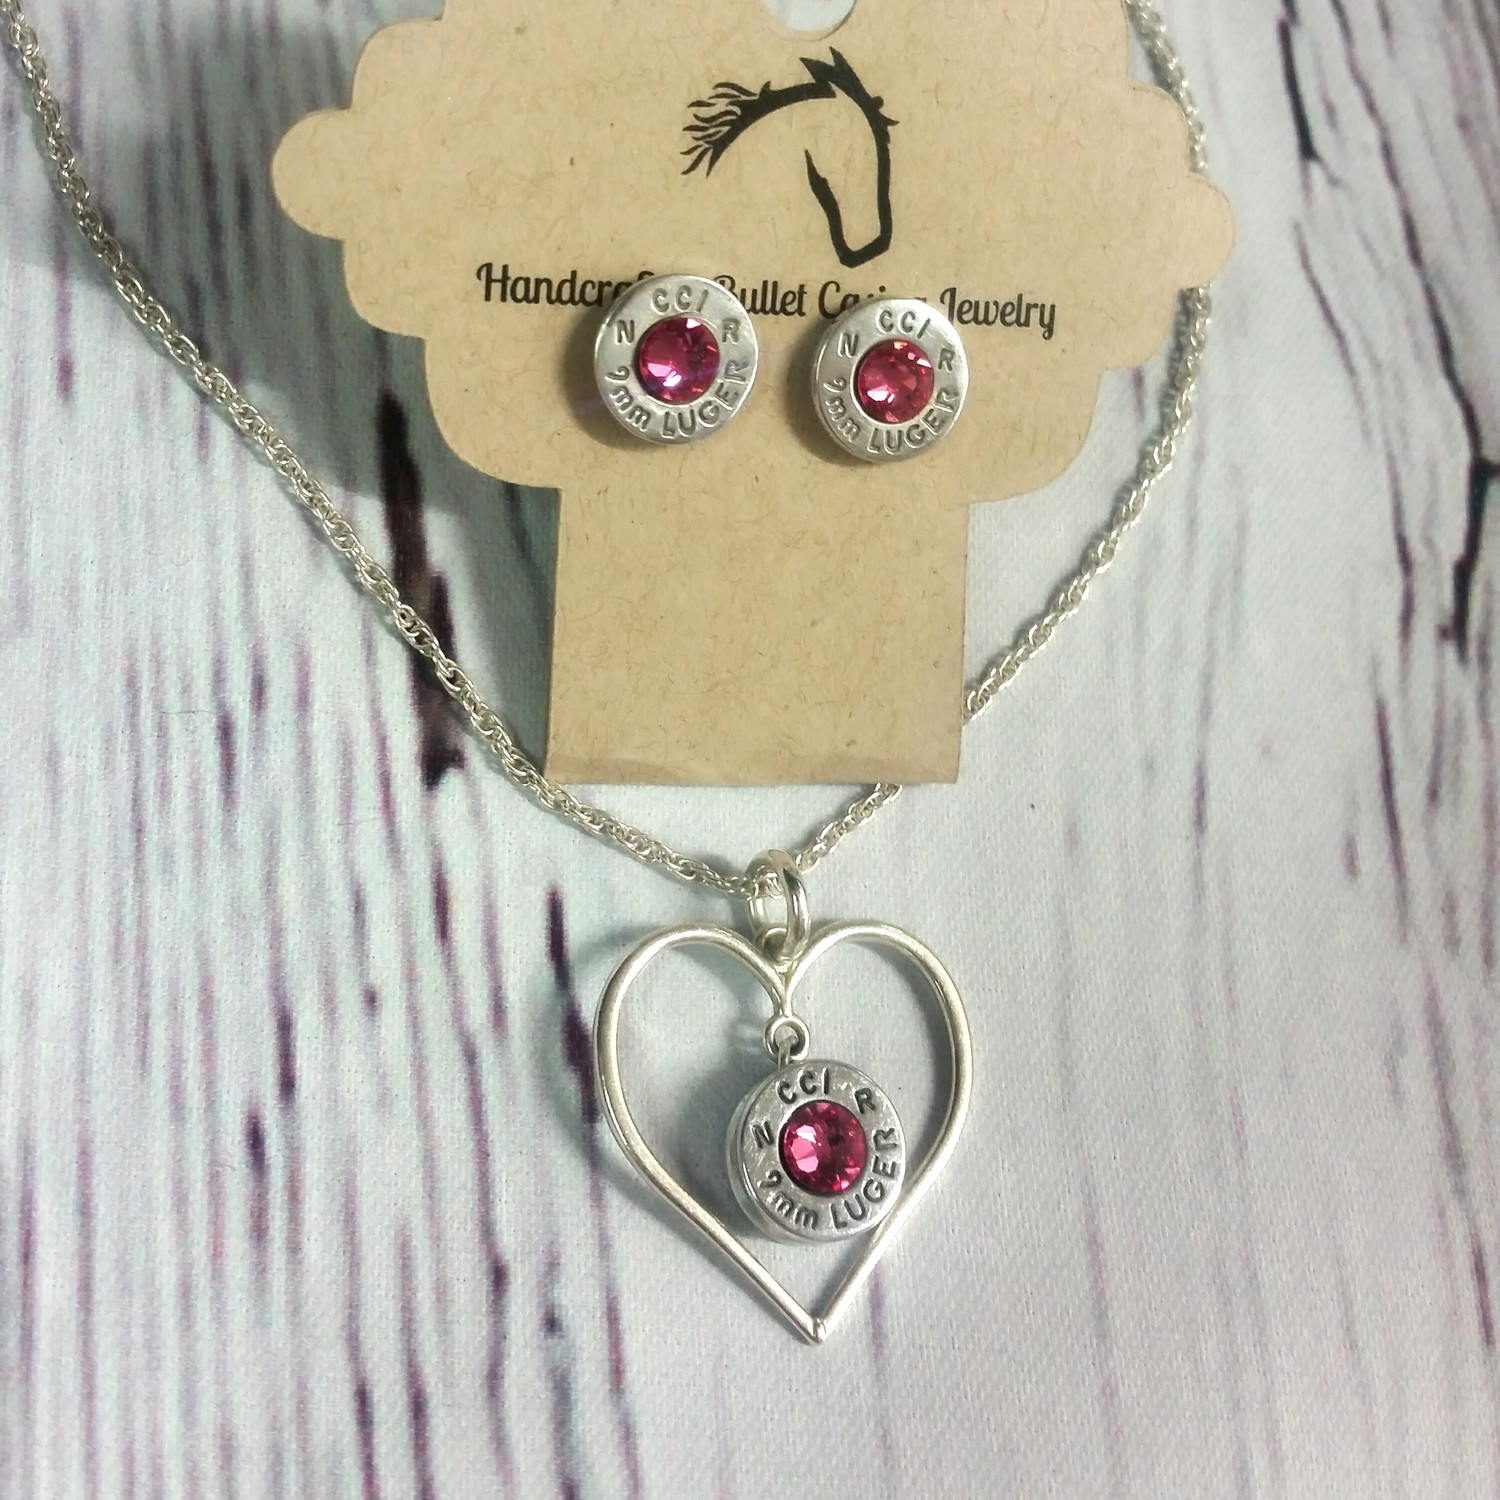 Sterling Silver Heart and Bullet Necklace and Earring Set